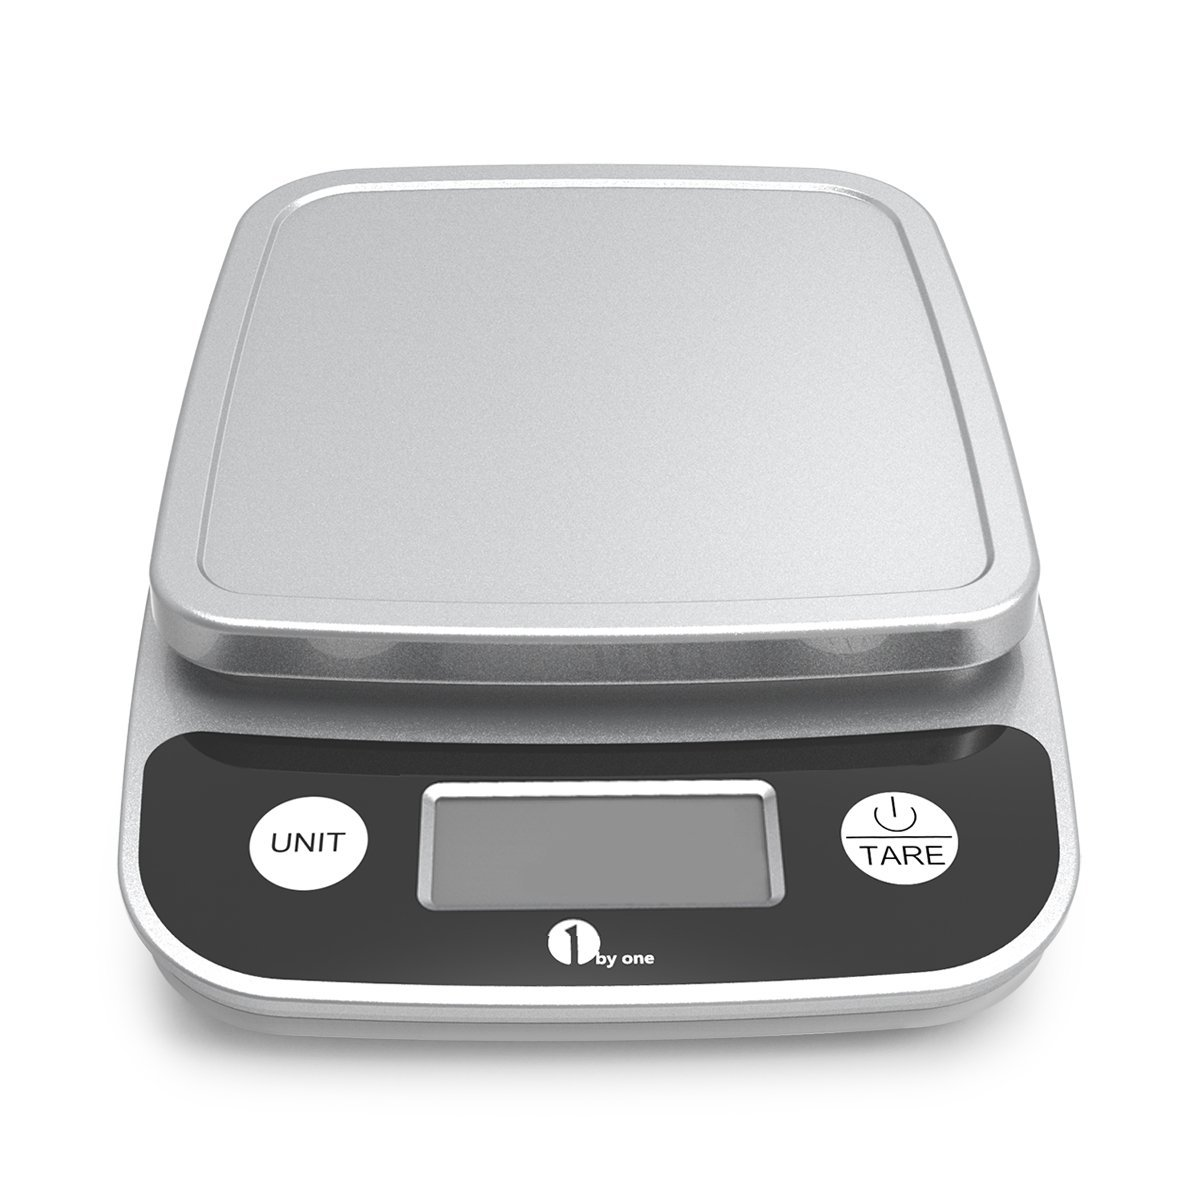 1byone Digital Display Kitchen Scale